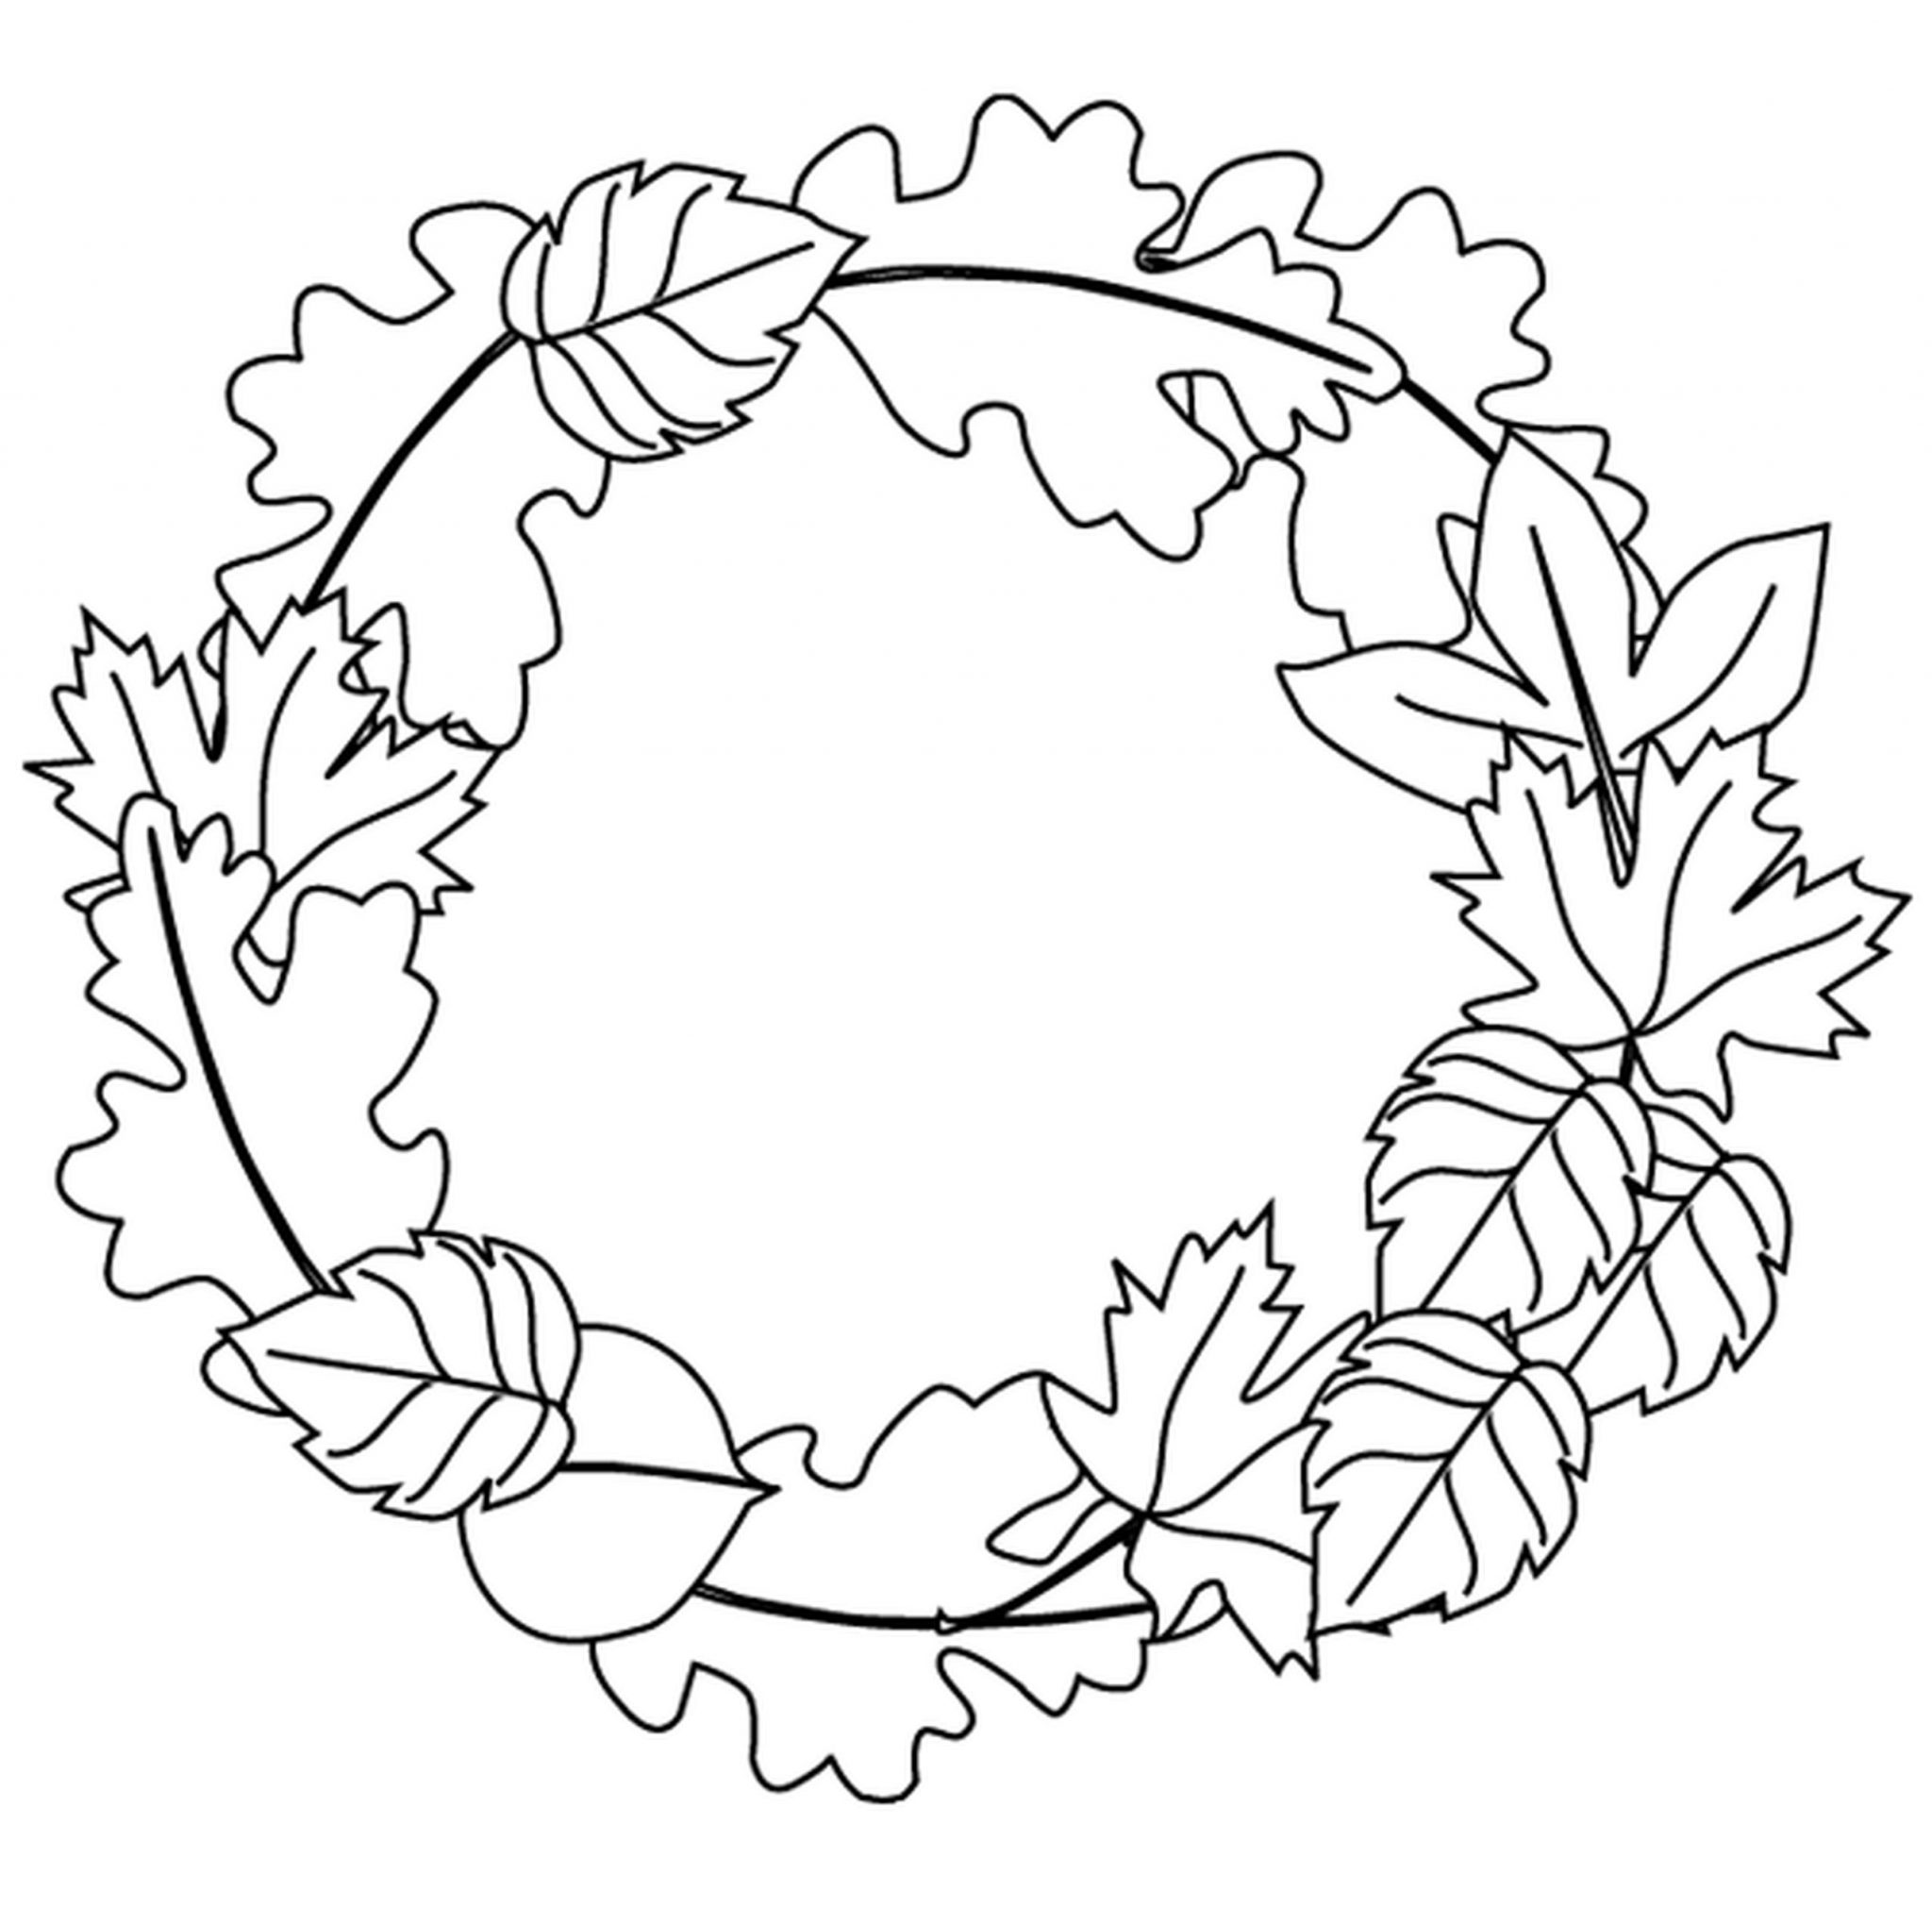 coloring pictures leaves free printable leaf coloring pages for kids 11 pics how leaves coloring pictures